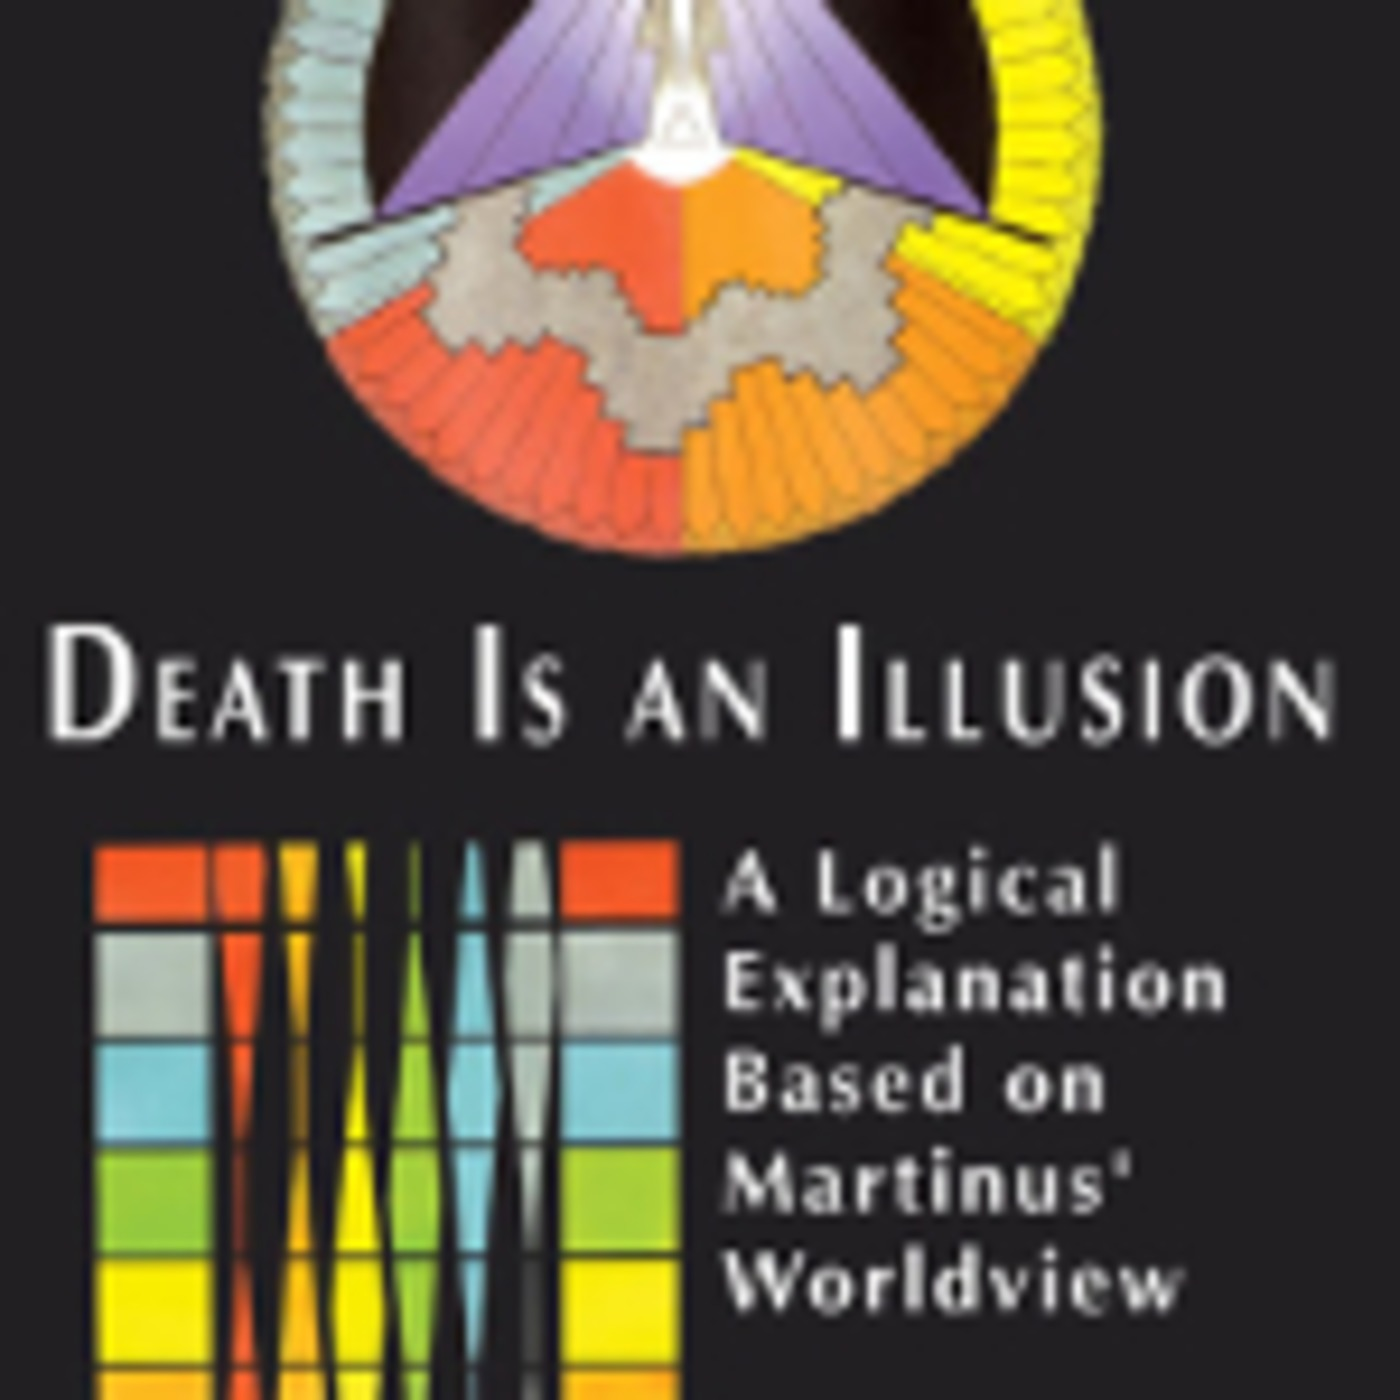 Death Is an Illusion, by author Else Byskov